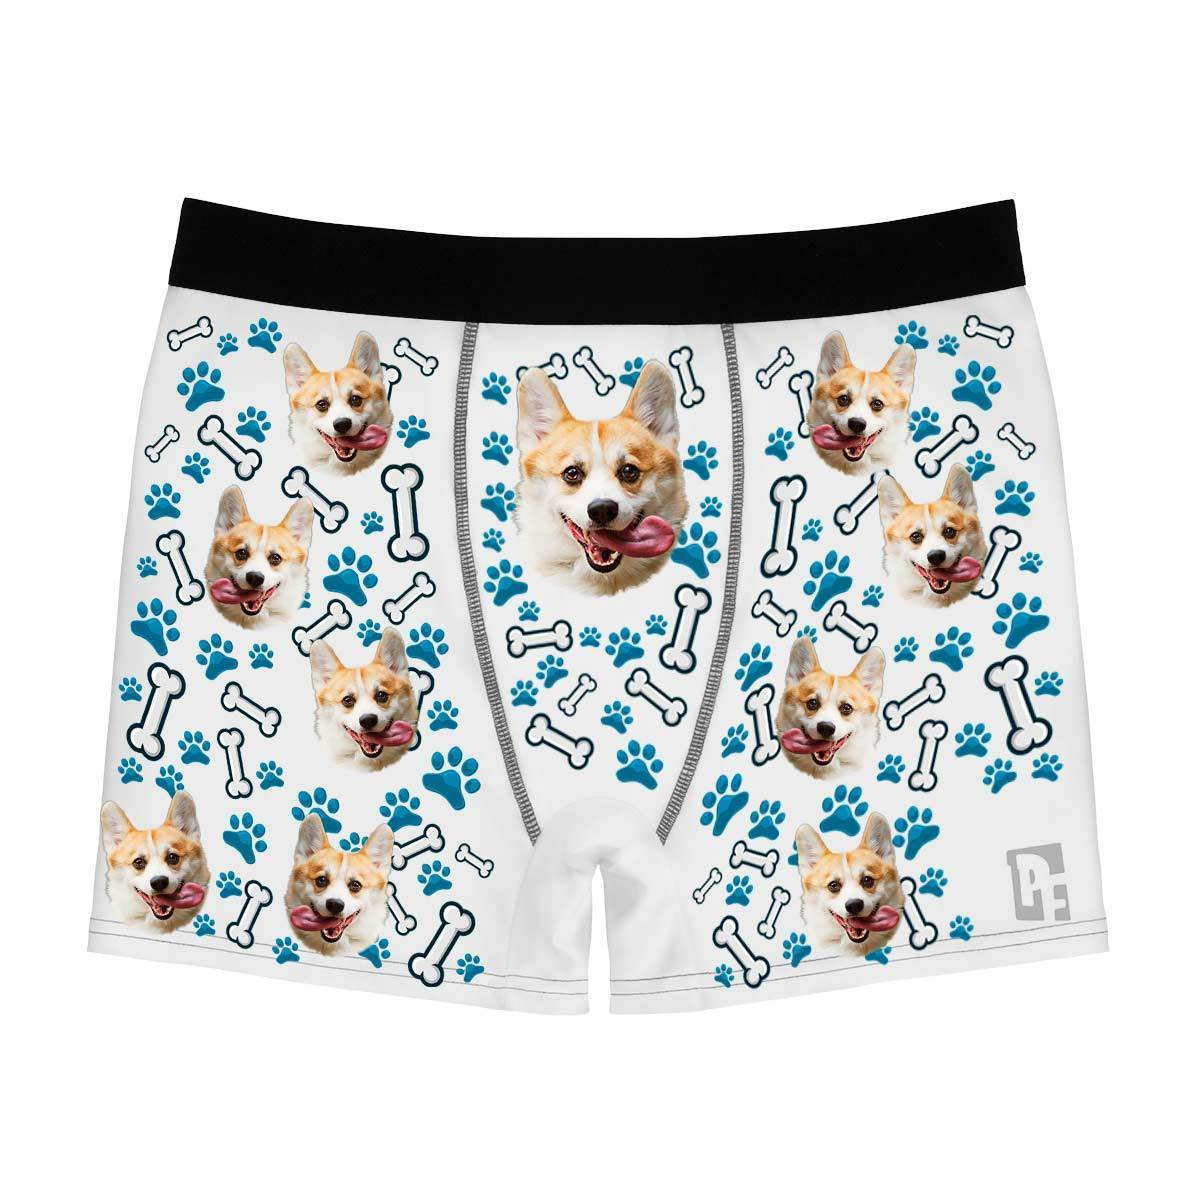 White Dog men's boxer briefs personalized with photo printed on them